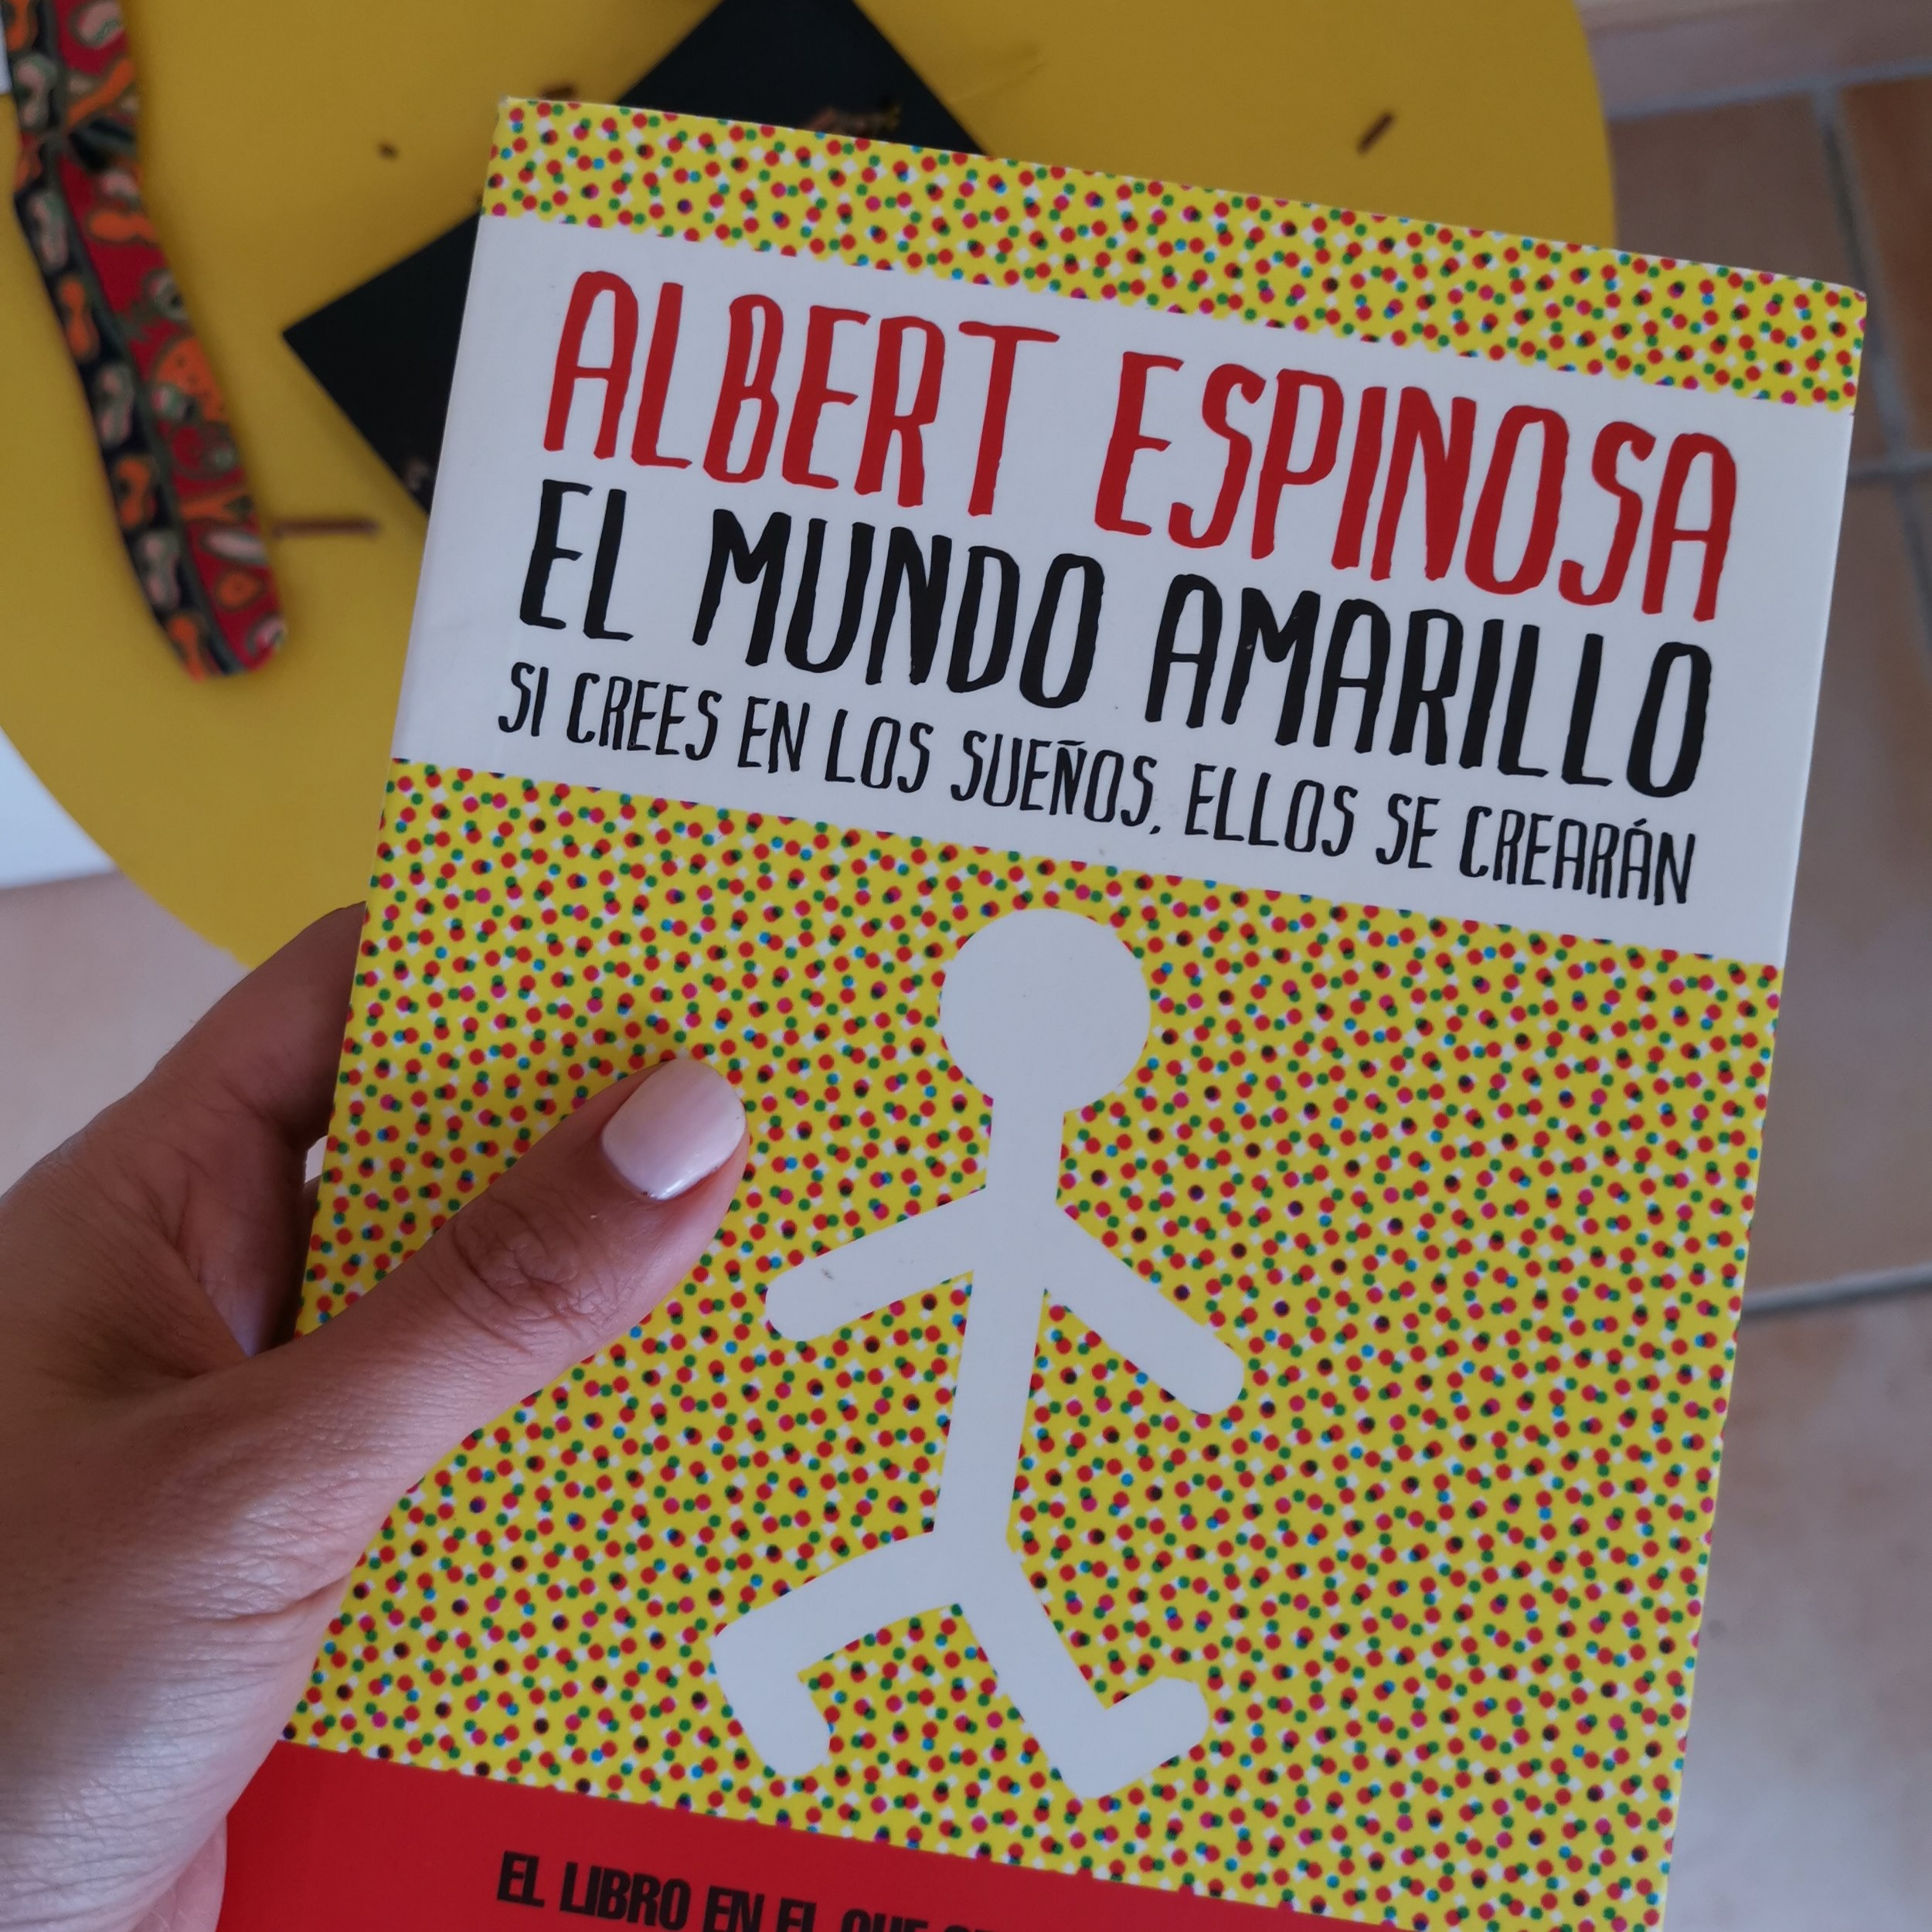 el-mundo-amarillo-albert-espinosa-imma-rabasco-living-with-choco